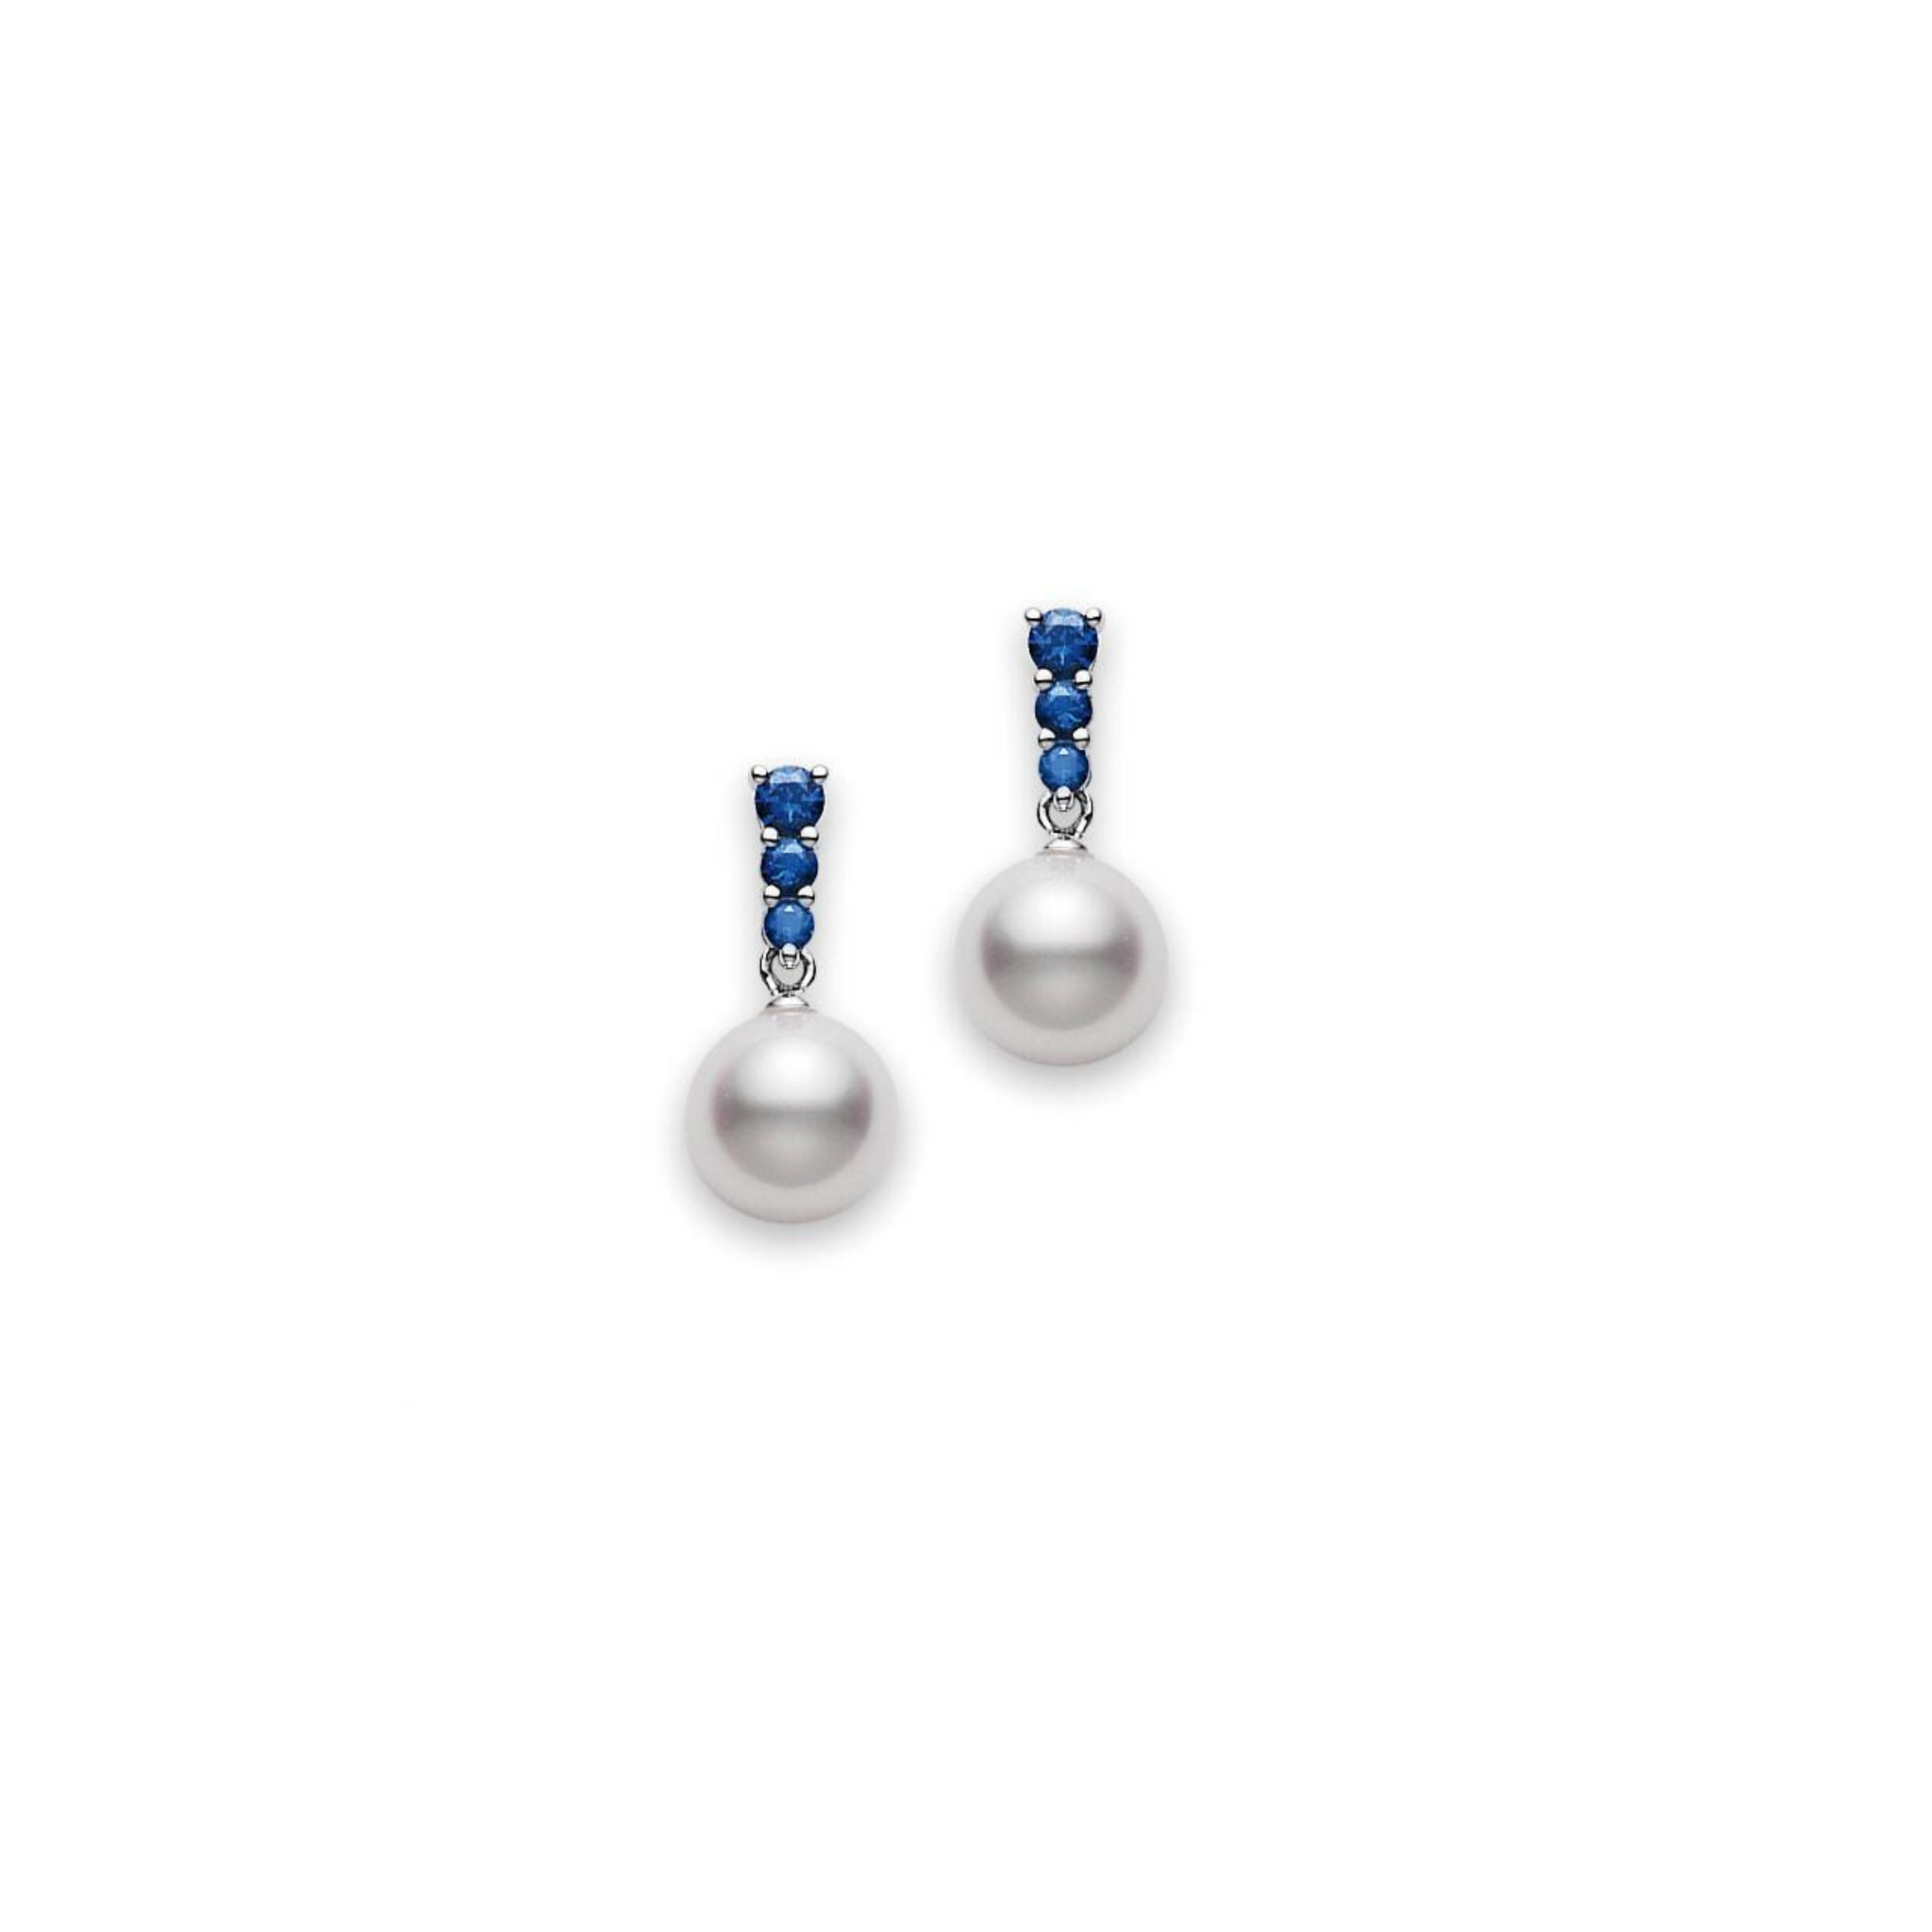 Morning Dew Akoya Cultured Pearl Earrings